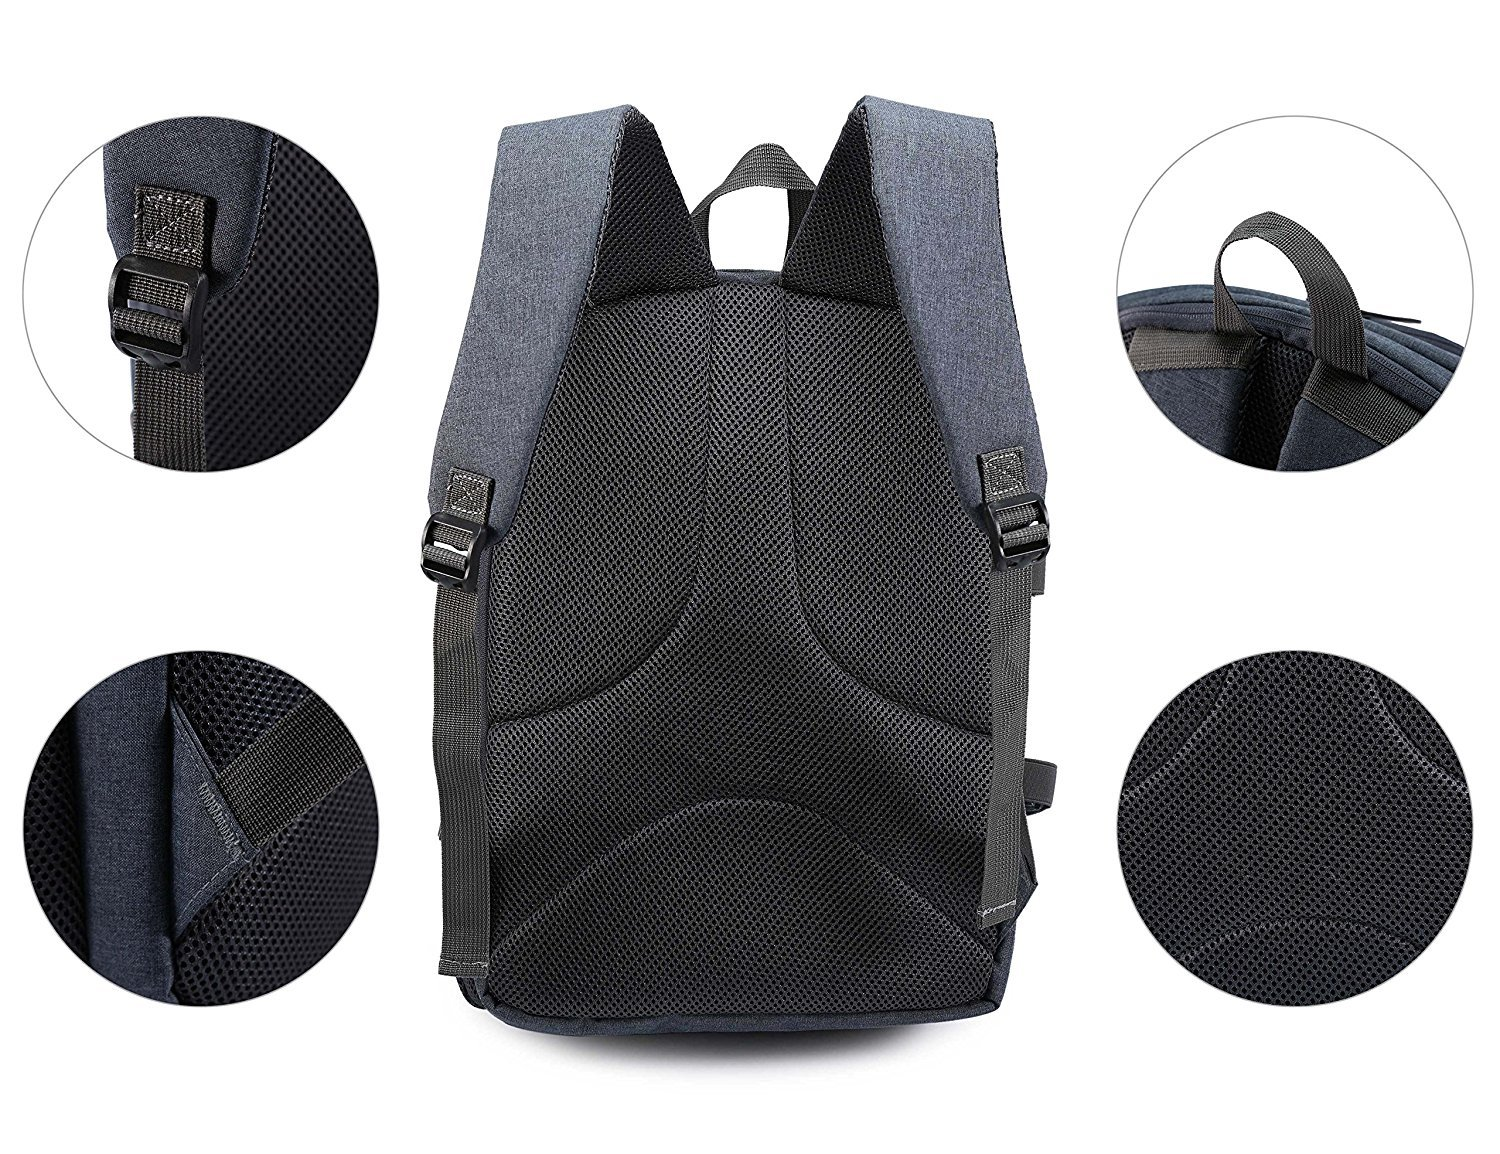 Camera Backpack Waterproof Nylon DSLR Backpack Professional Camera Bag with USB External Charging Port for Canon Nikon Sony Camera Accessories and Laptops Tablets Black (Gray) by Cozyvie (Image #6)